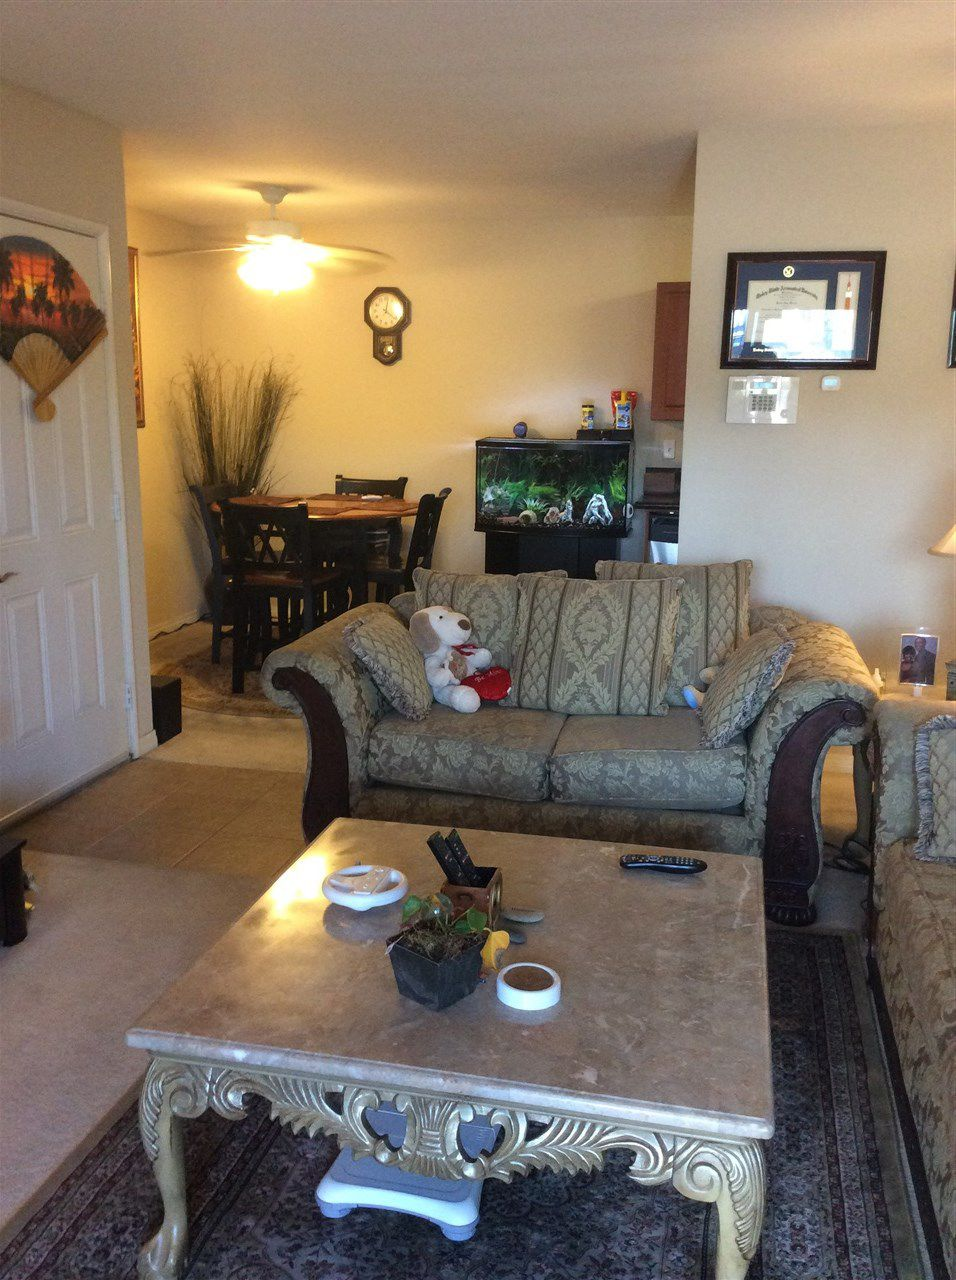 Main Photo: PARADISE HILLS Condo for sale : 2 bedrooms : 2960 Alta View #206 in San Diego